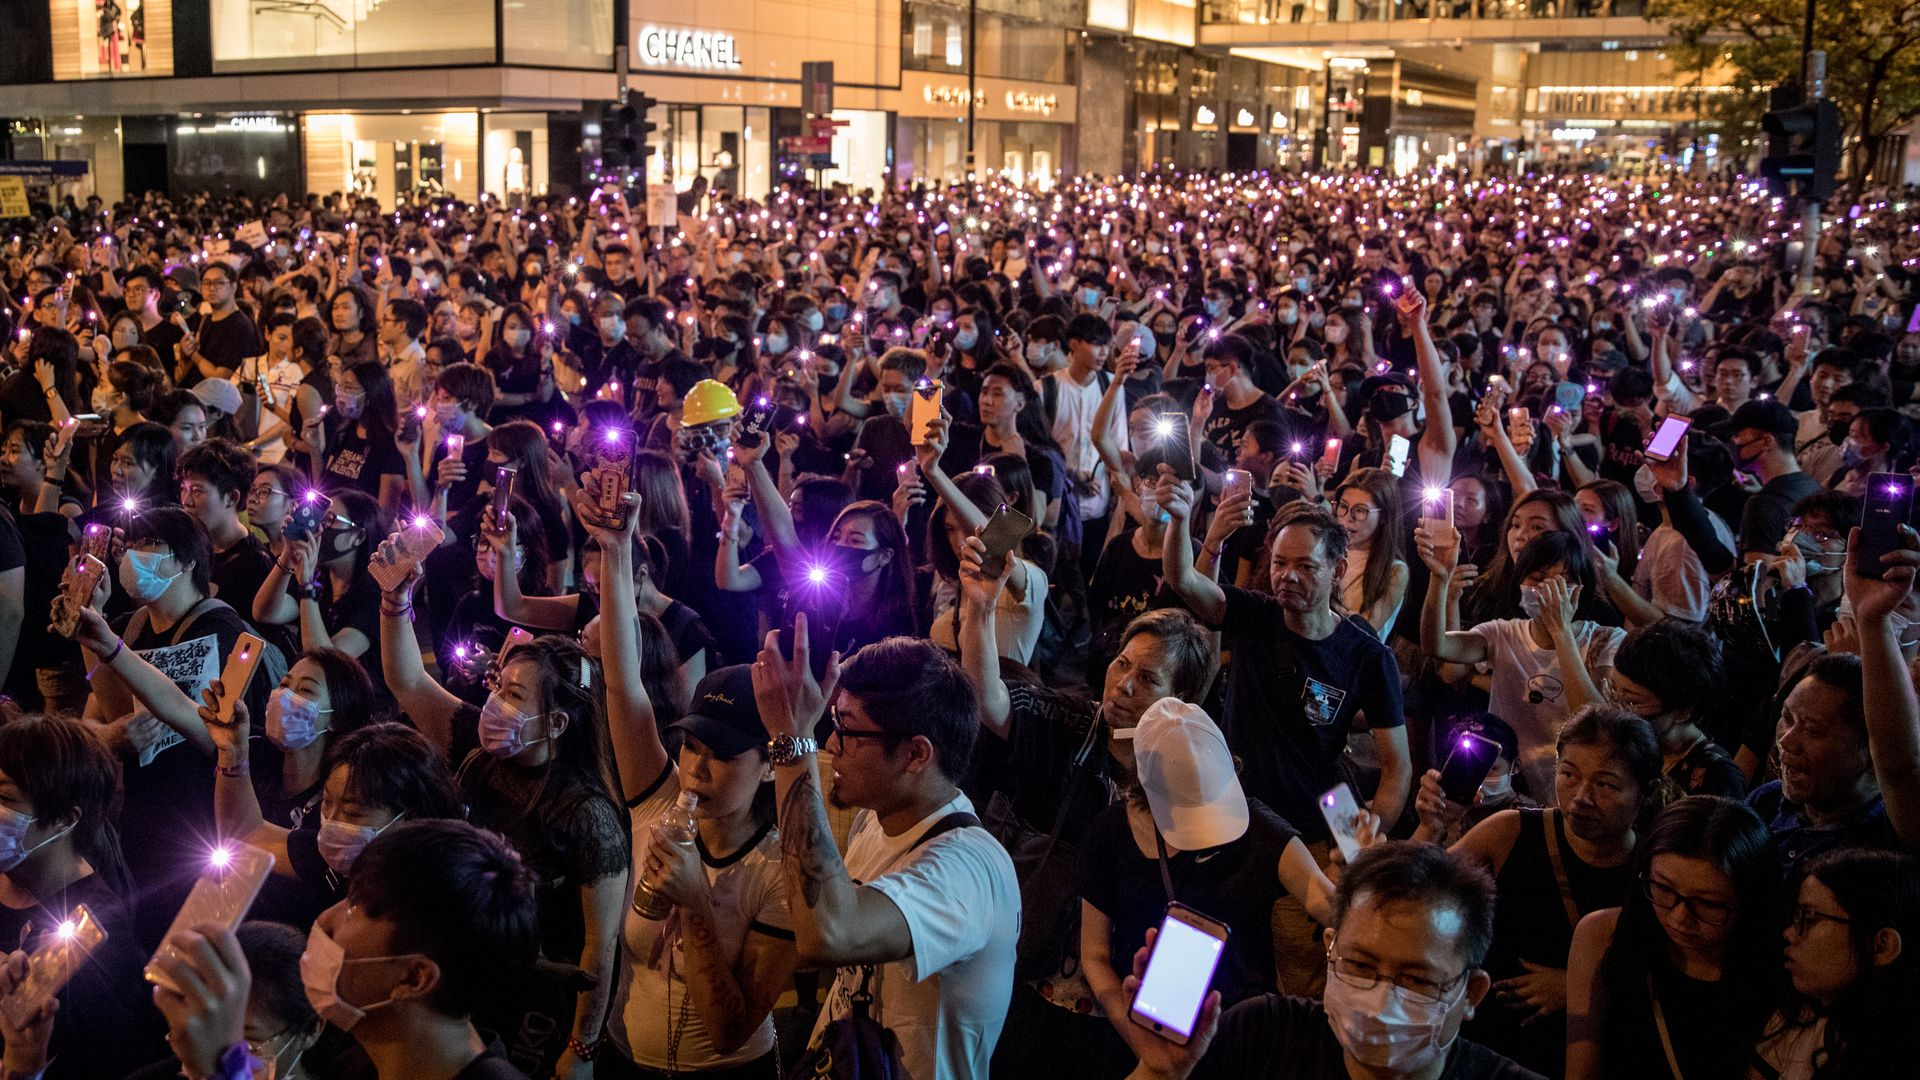 Thousands join Hong Kong MeToo rally against police as Chinese troops cause unease